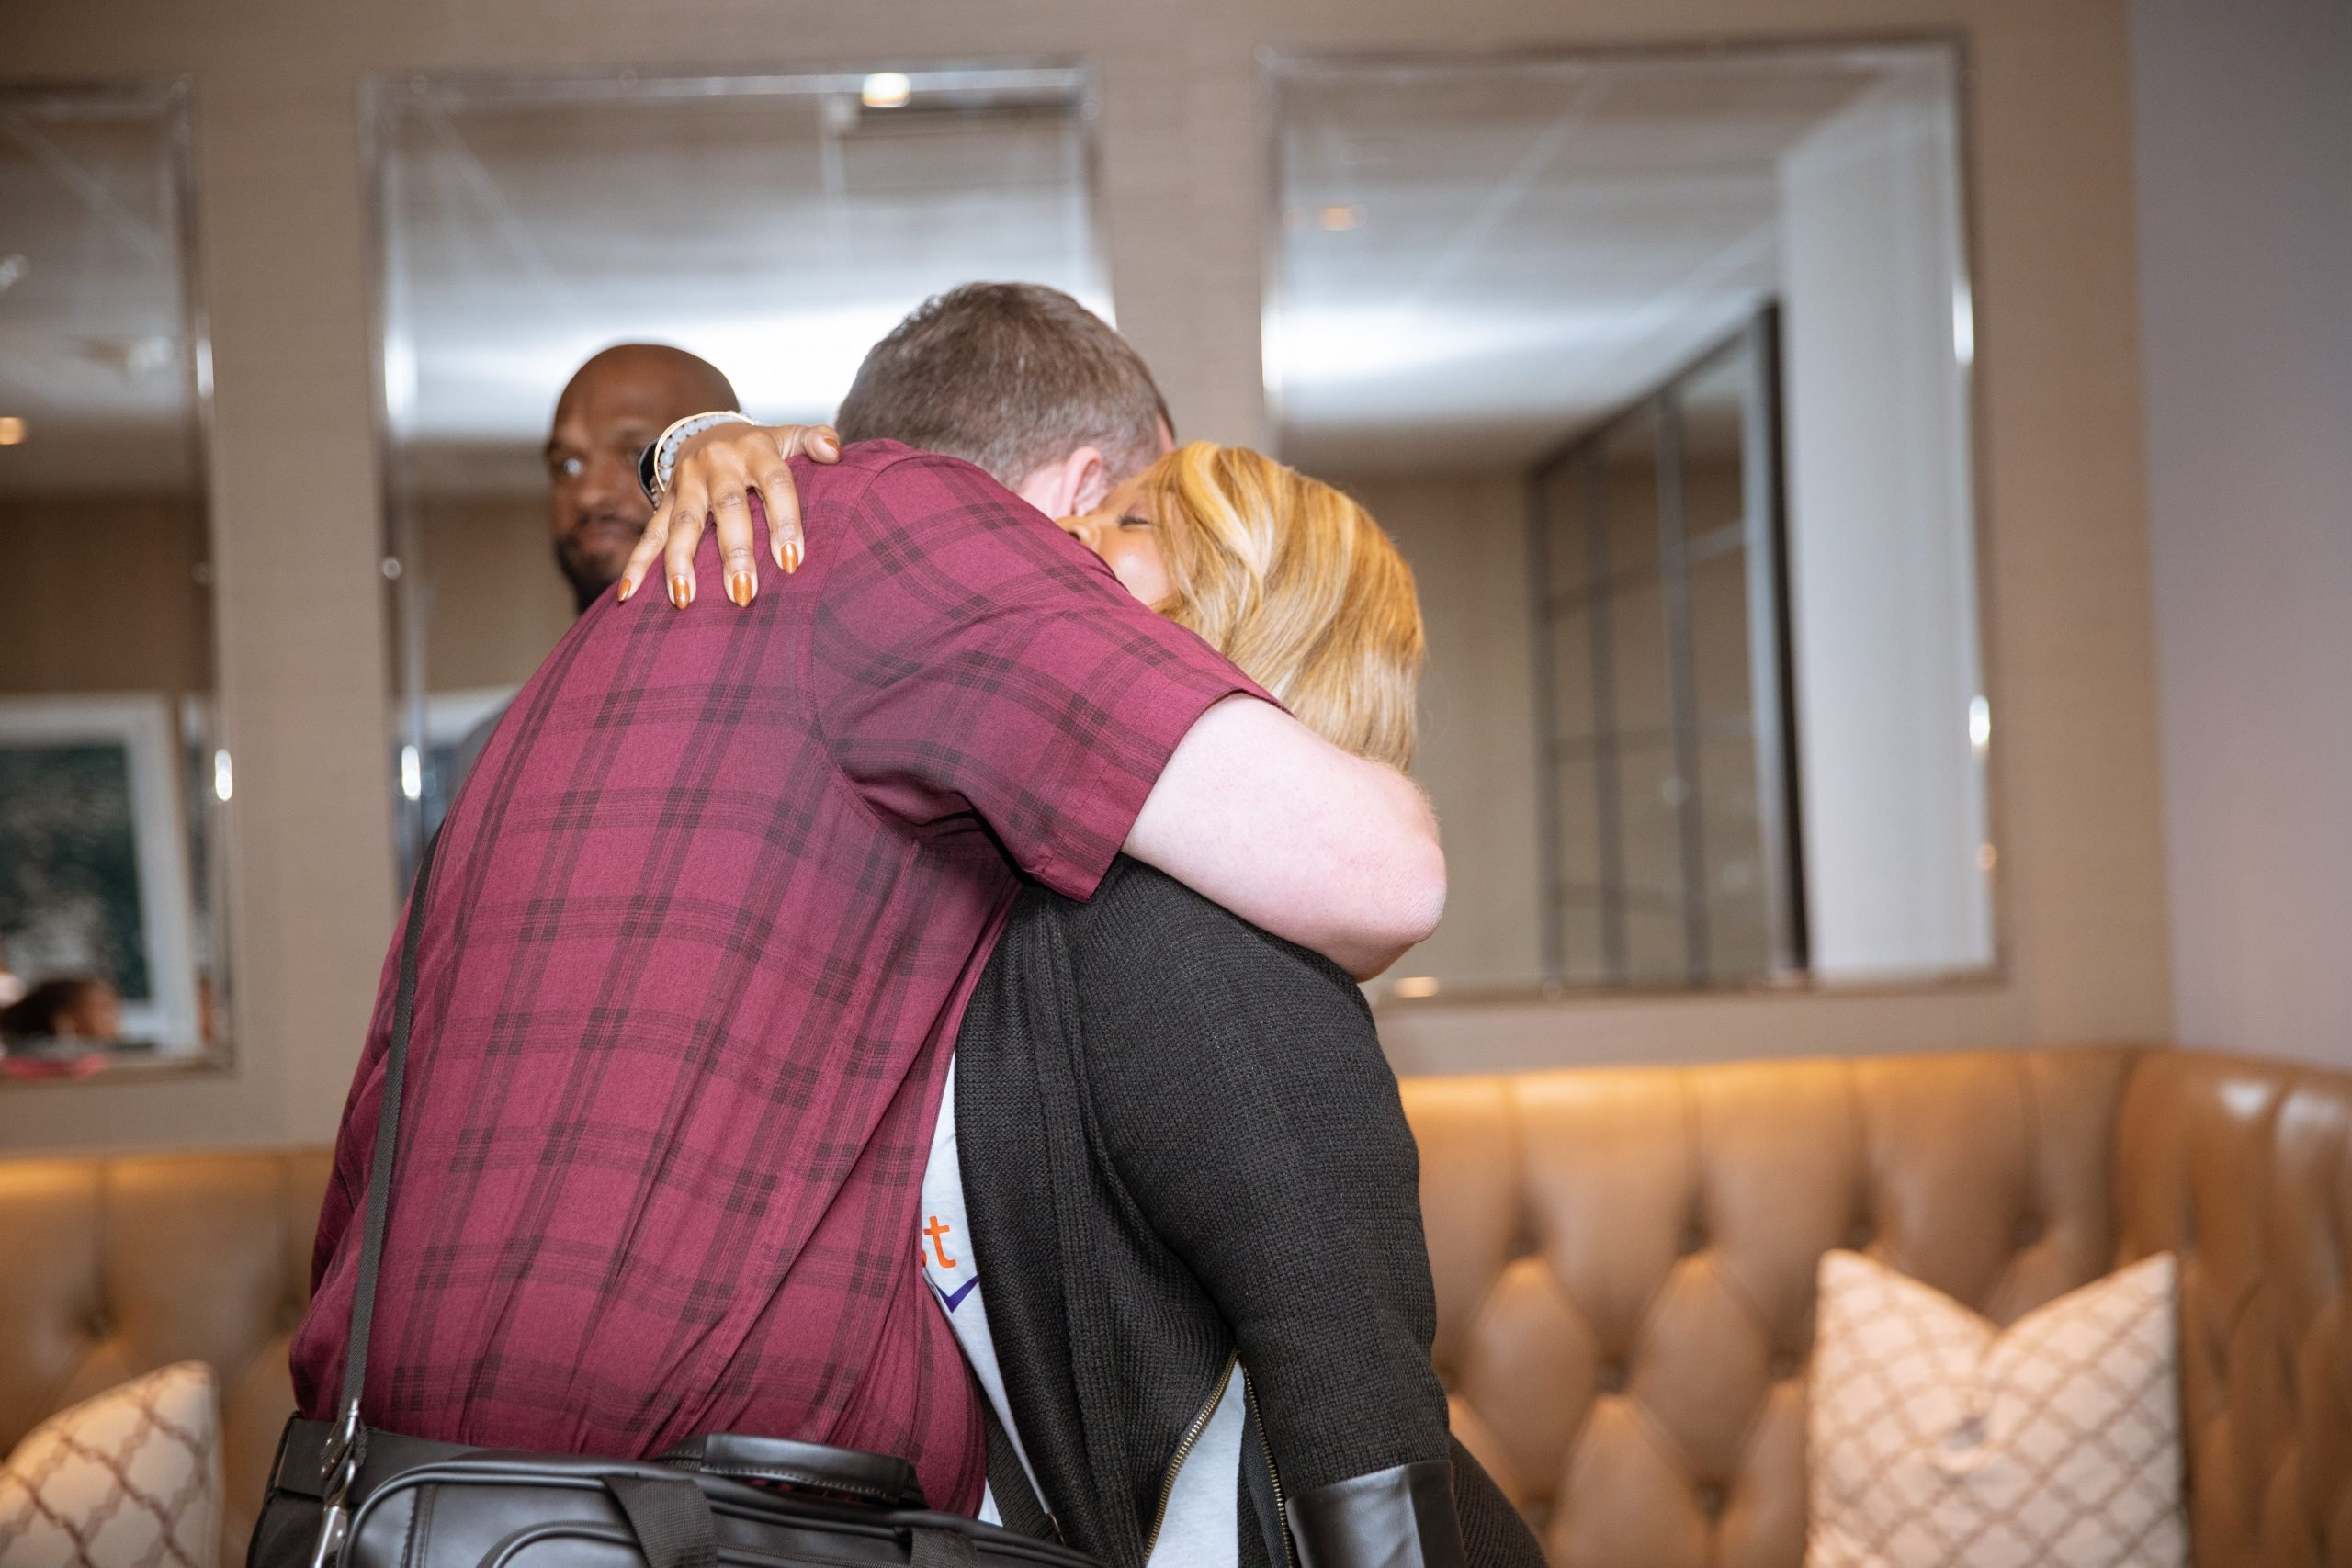 Founder Lisa Bailey wears a black cardigan and hugs a man wearing a red plaid shirt with a crossbody briefcase